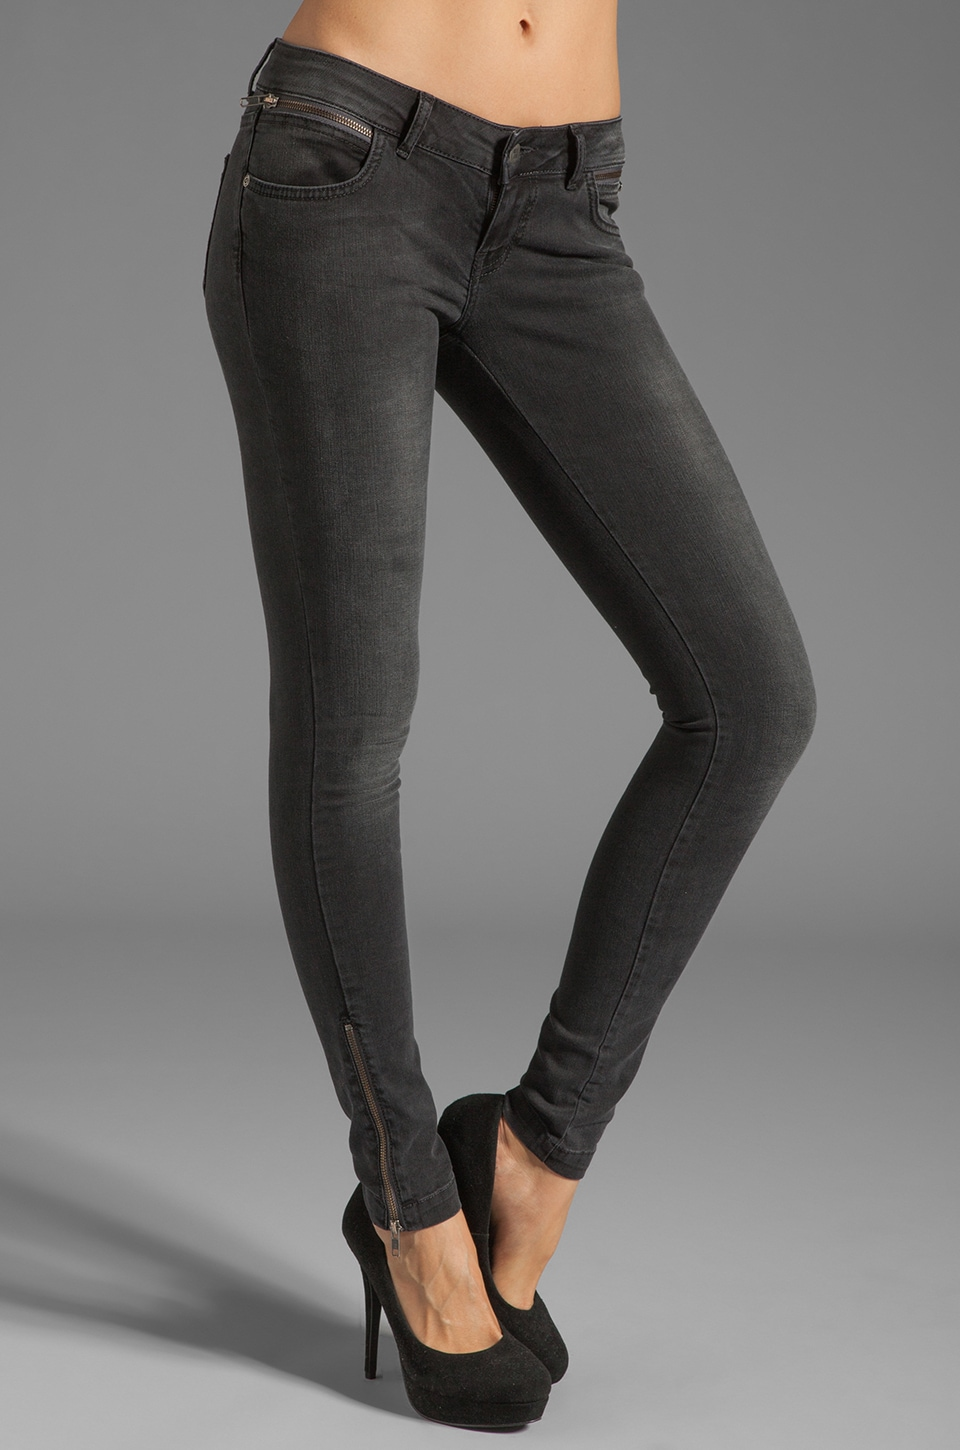 ANINE BING Skinny Double Zipper Skinny in Charcoal